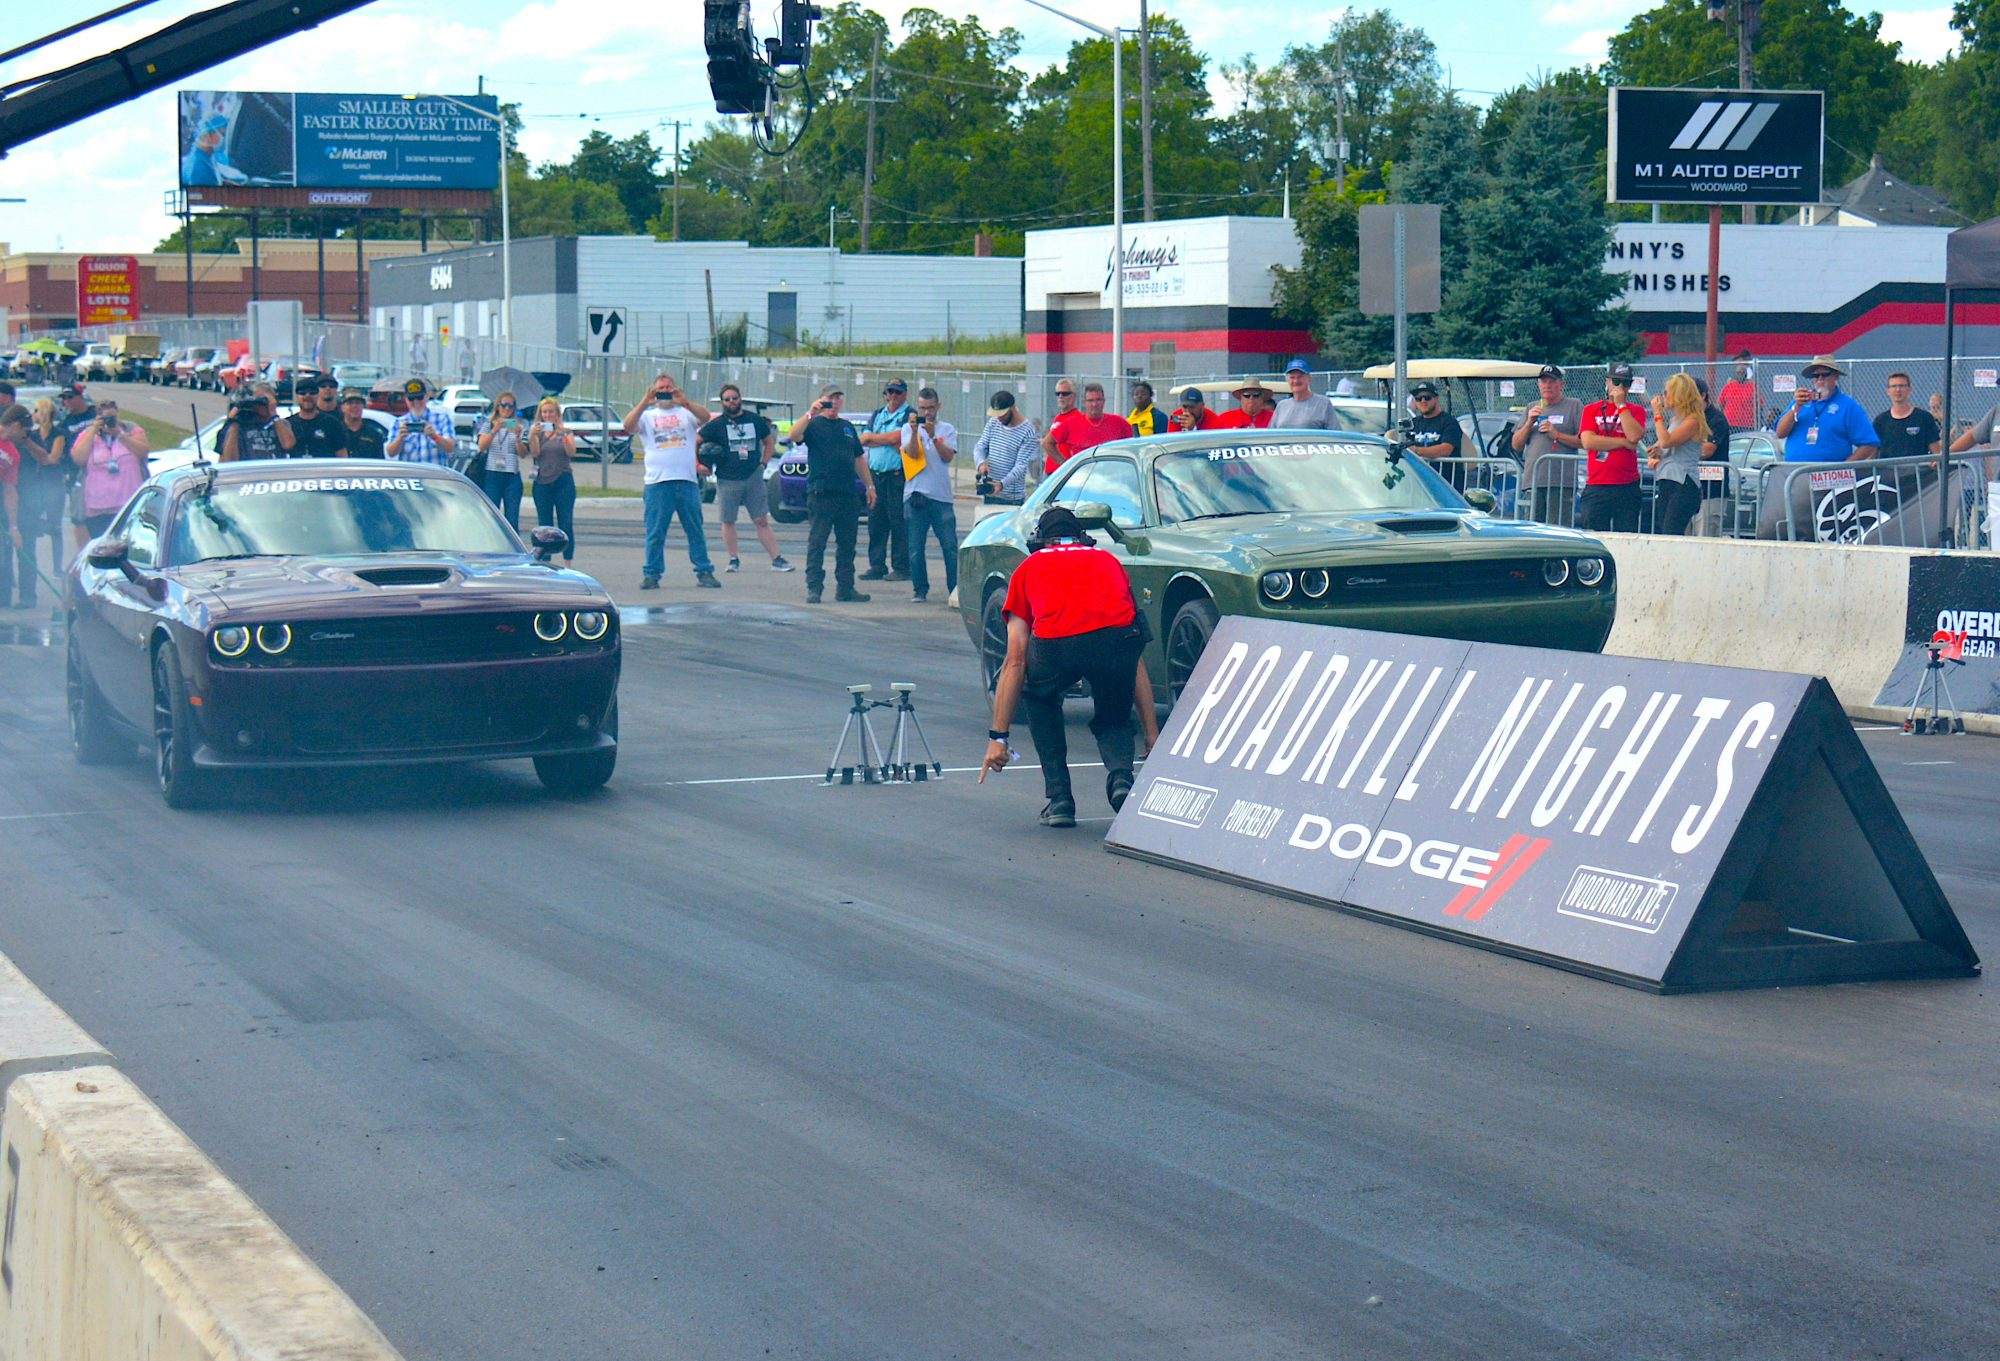 Two Challengers drag racing